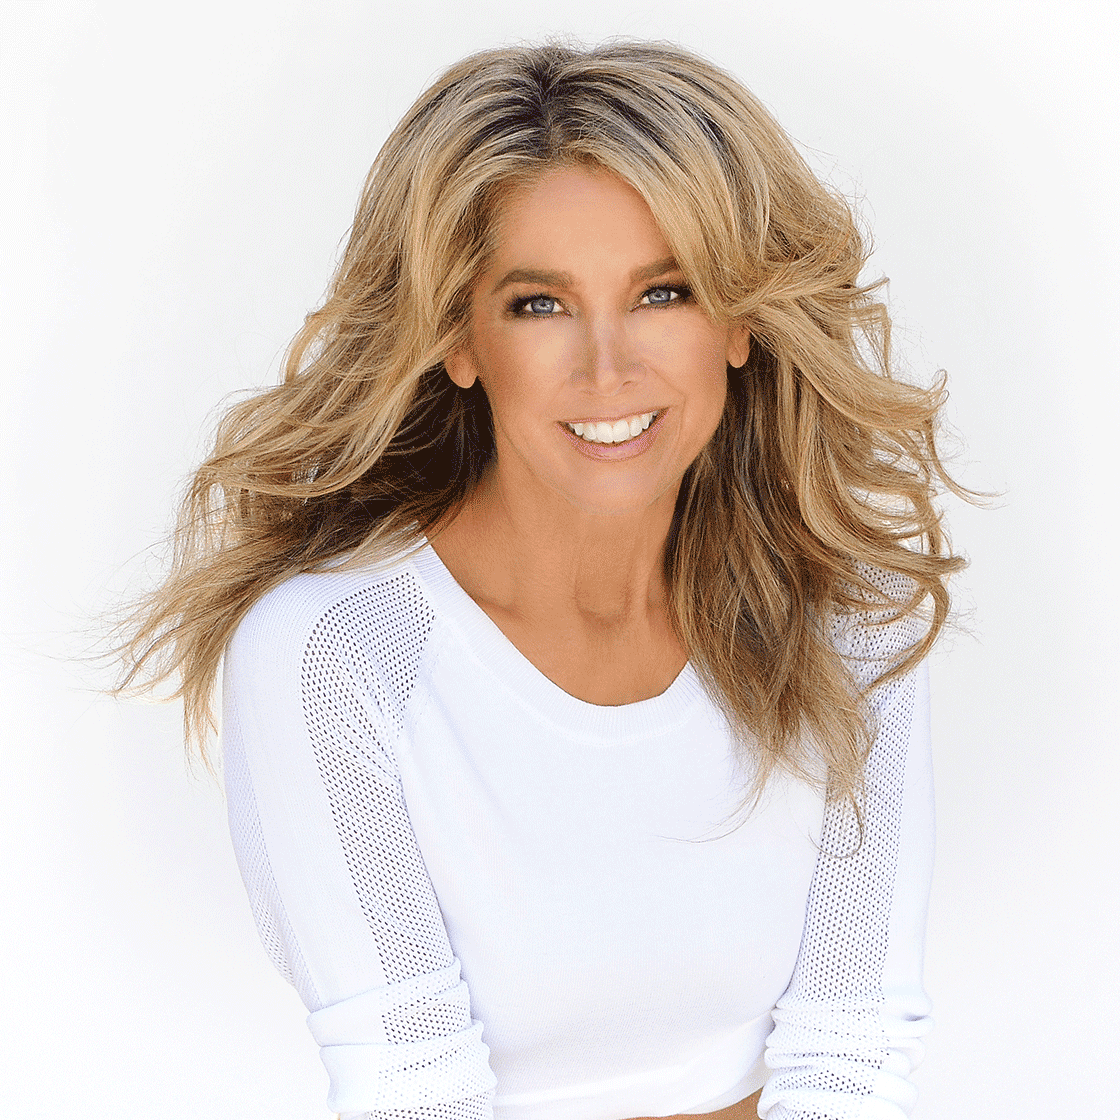 <strong>UI/UX Design</strong>. Homepage redesign for Denise Austin, America's favorite fitness guru. The homepage focuses on the many benefits of training with Denise featuring a test video player, large images of current meals, and a comparison chart to help the user decide which plan is best for them.